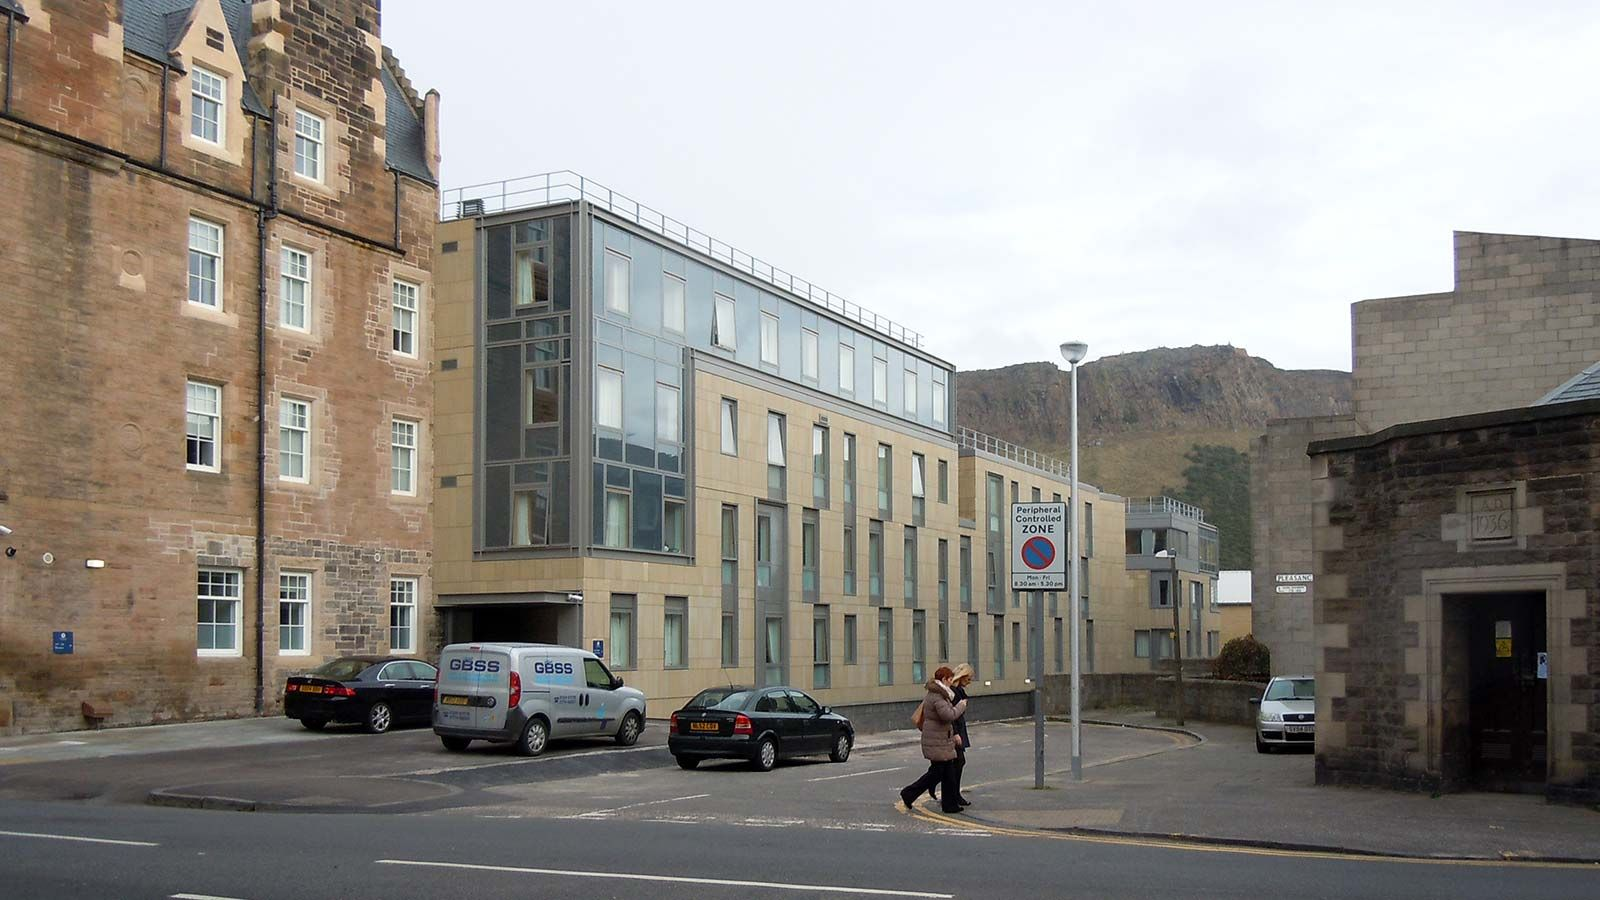 Deaconess House Building Street View - Mace Group